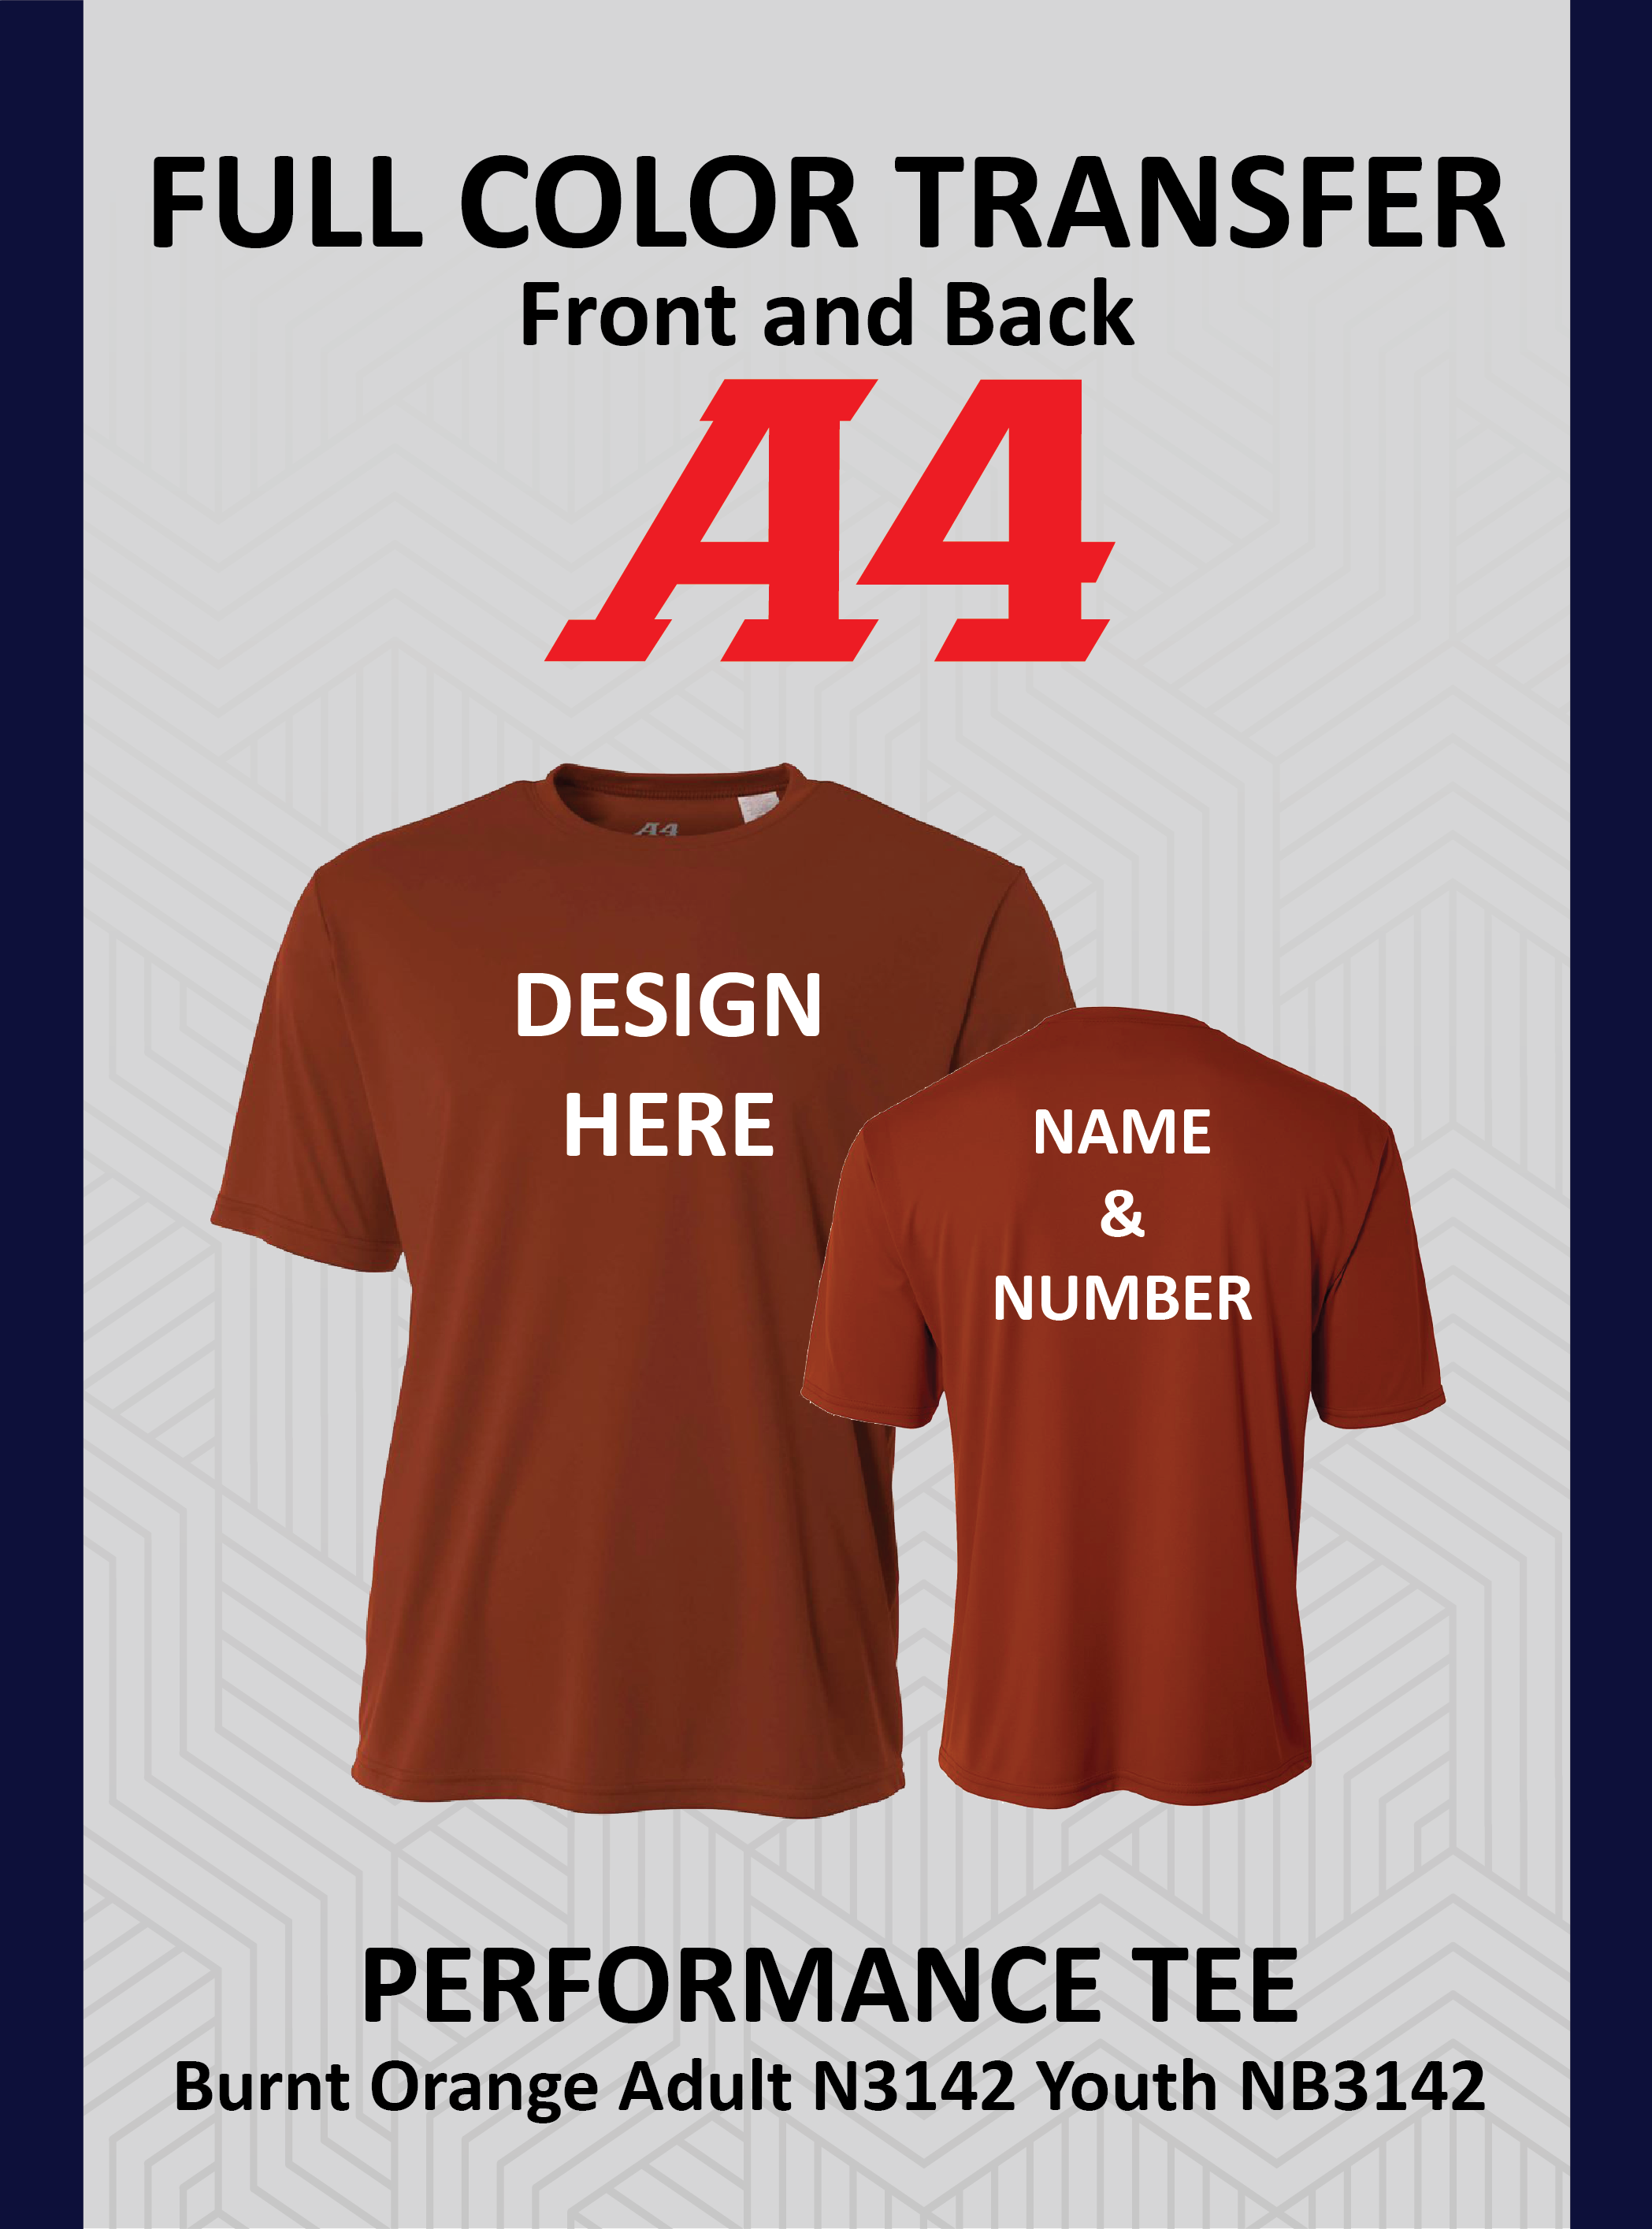 Performance Tee Specialty Colors Youth & Adults Front Logo and Name & Number on Back